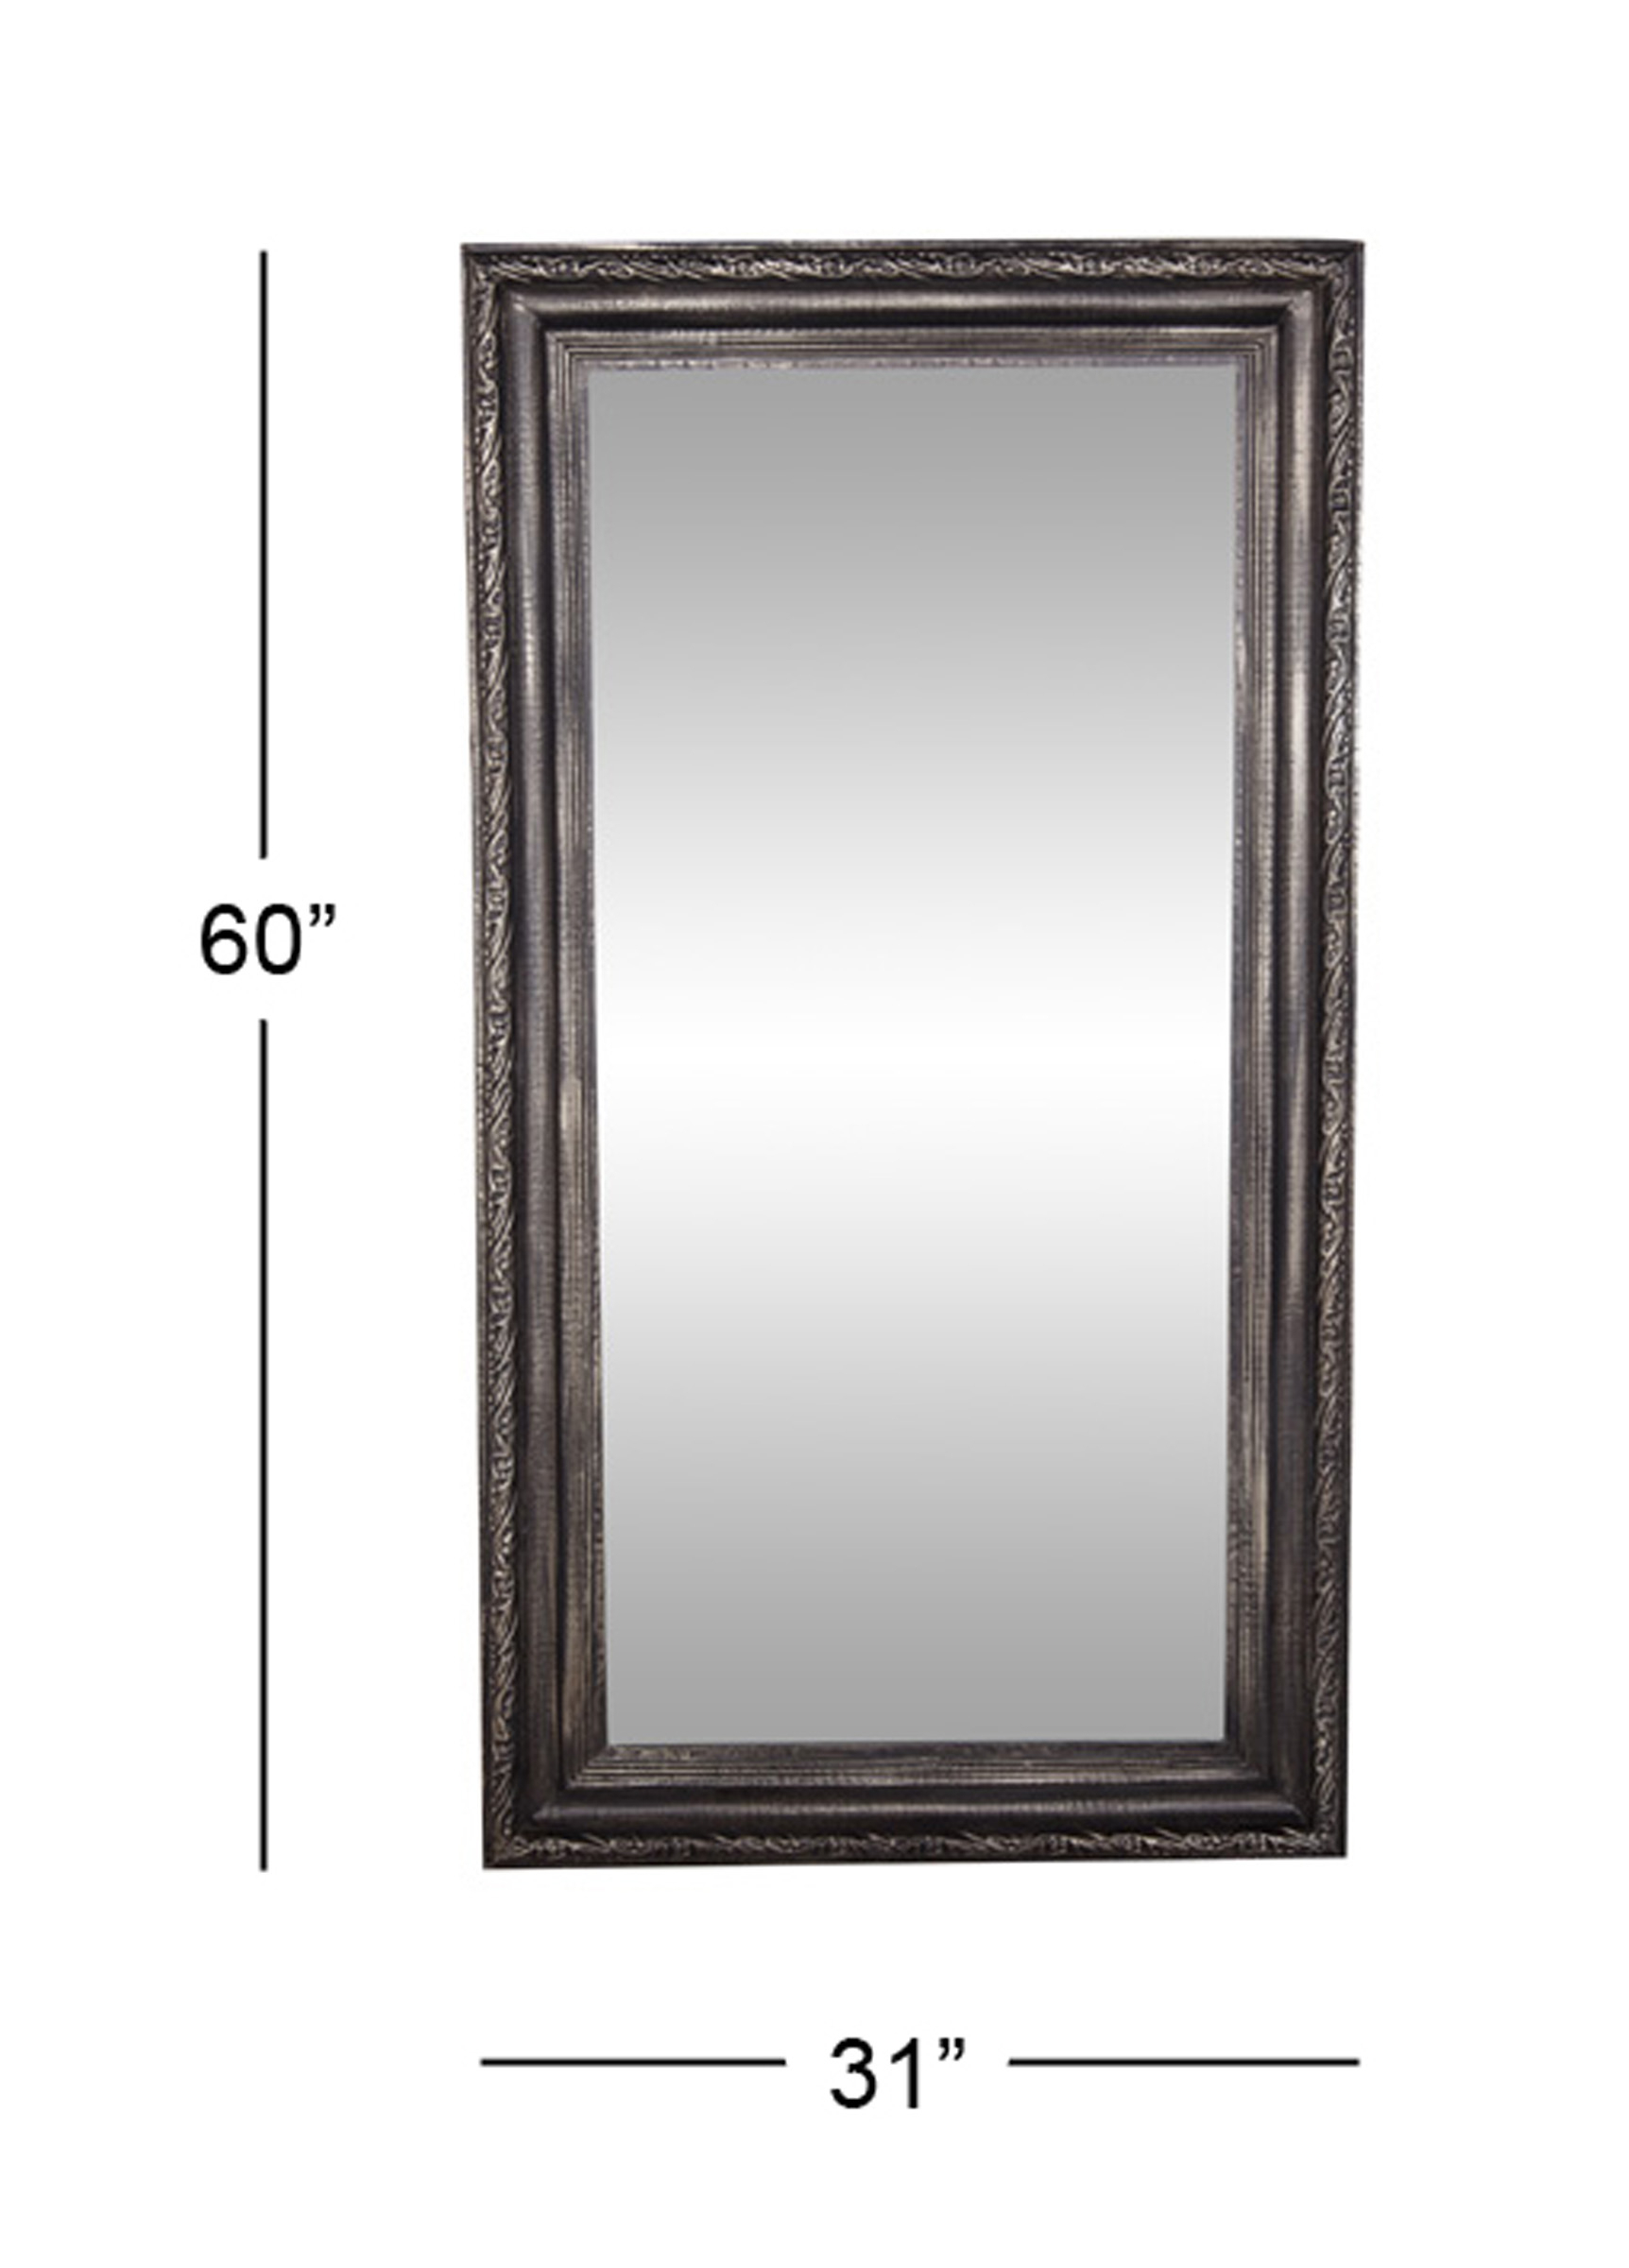 Decmode Traditional 60 X 32 Inch Black Wood And Metal Rectangular Wall  Mirror Within Traditional Metal Wall Mirrors (Image 2 of 20)